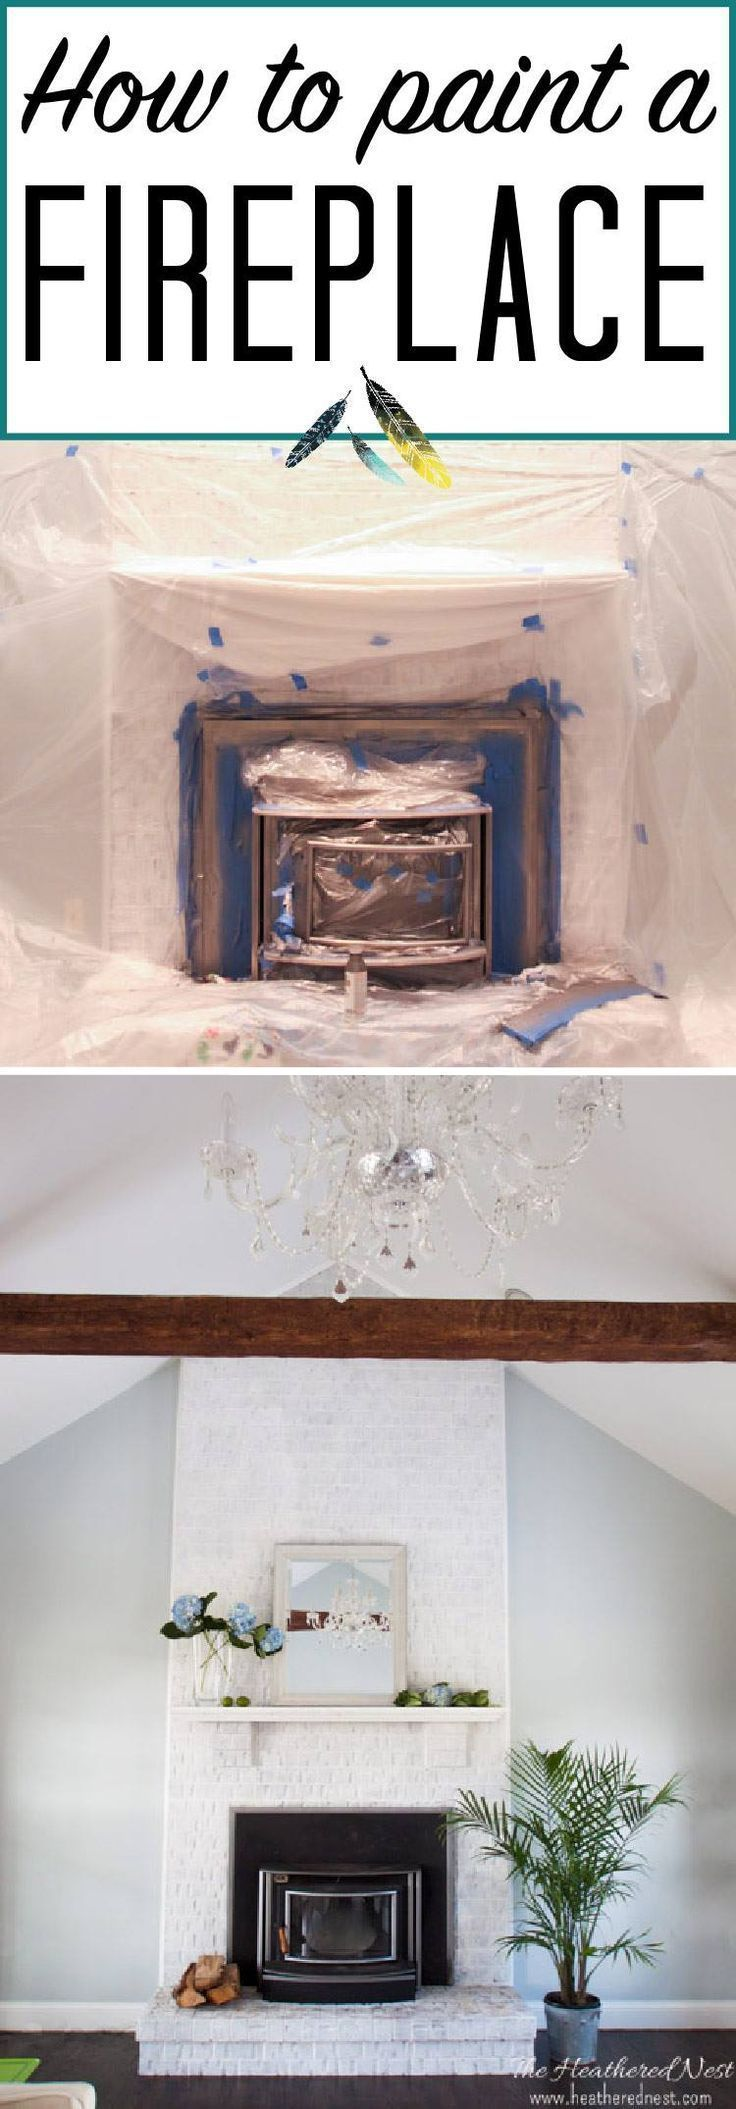 Fireplace Ideas Diy 116 Best Fireplaces Mantels Images On Pinterest Fireplace